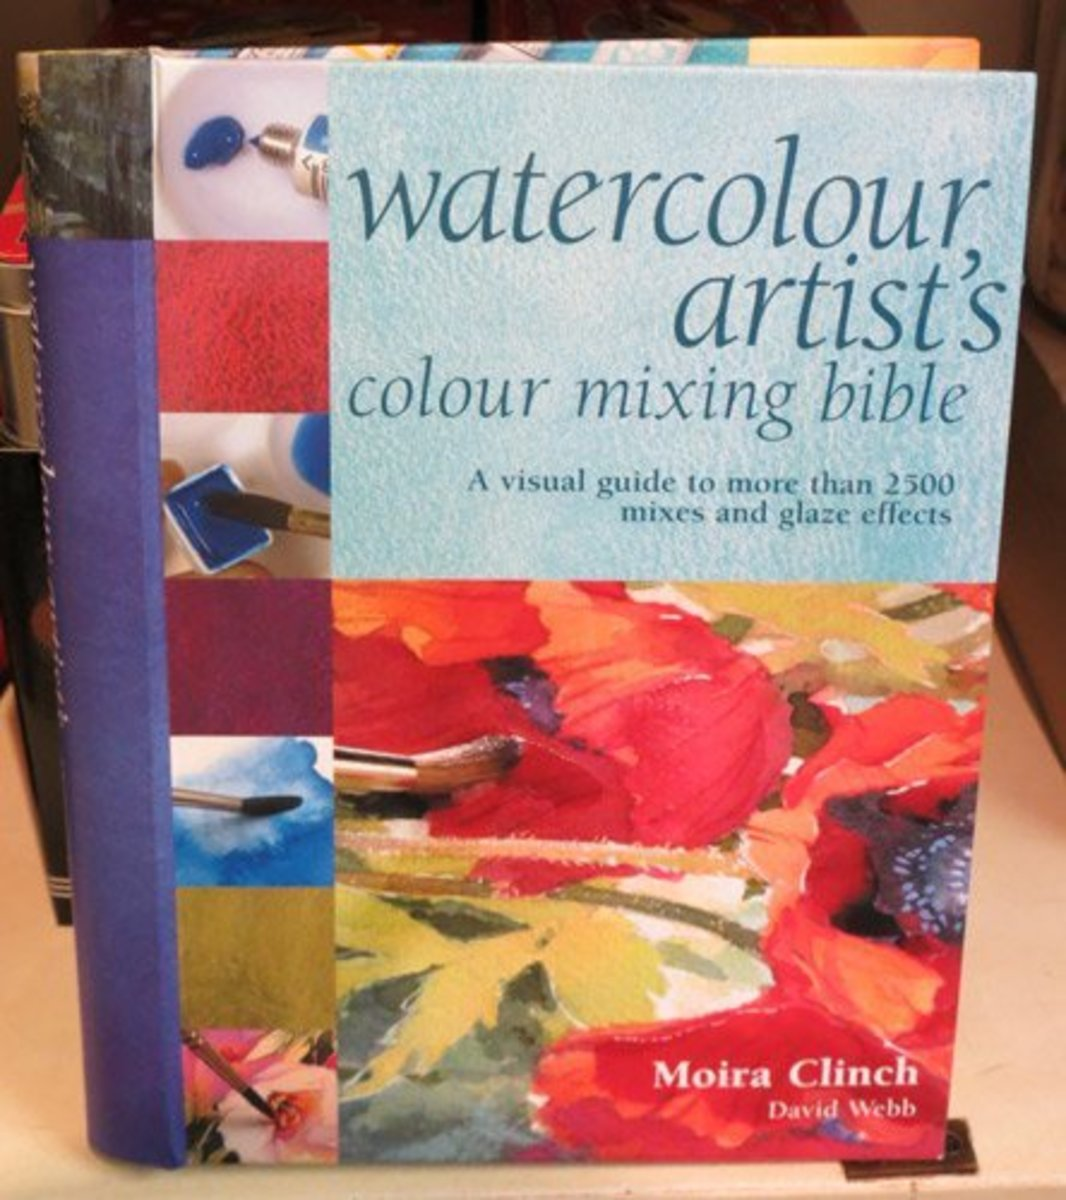 The Watercolor Mixing Directory is known as The Watercolour Artist's Colour Mixing Bible in the UK - and looks like this